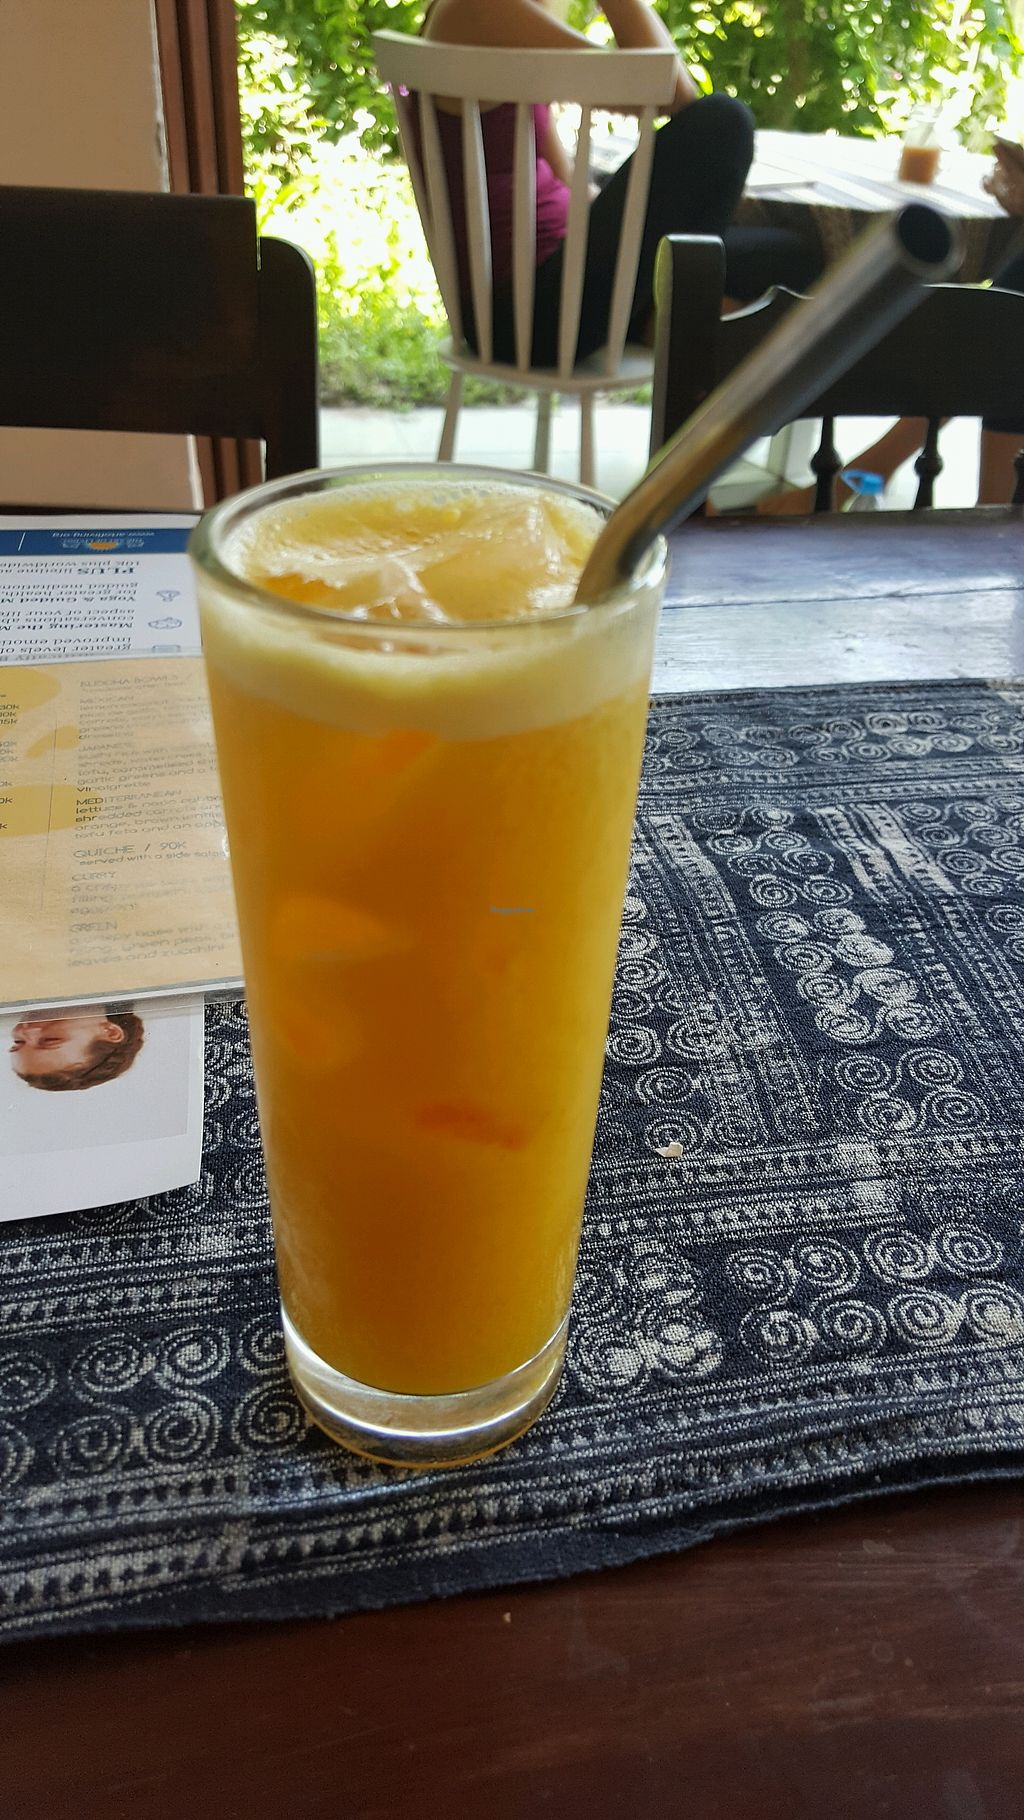 "Photo of Nomad Cafe  by <a href=""/members/profile/lulu1"">lulu1</a> <br/>passionfruit juice without sugar <br/> April 23, 2018  - <a href='/contact/abuse/image/70333/389780'>Report</a>"